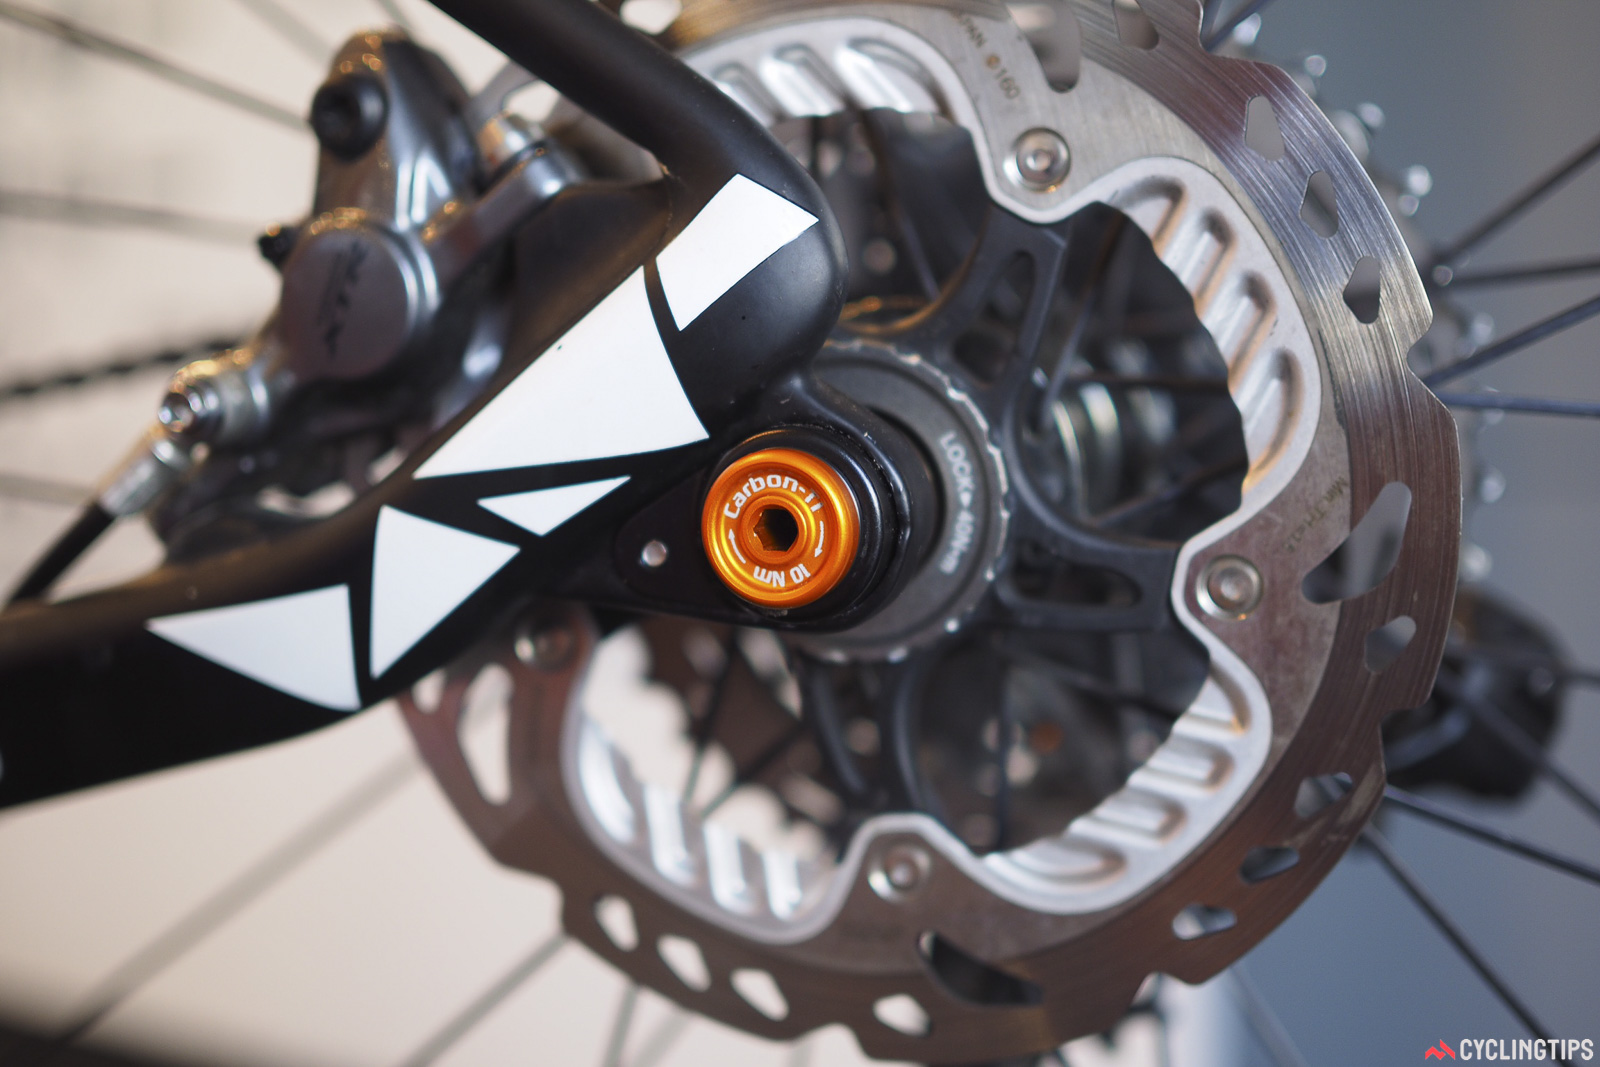 Looking to shed some weight from your thru-axle equipped disc road bike? Carbon Ti makes tooled axles claimed to save about 40g each - and yes, they're available in a broad range of colors and axle standards. Photo: James Huang.